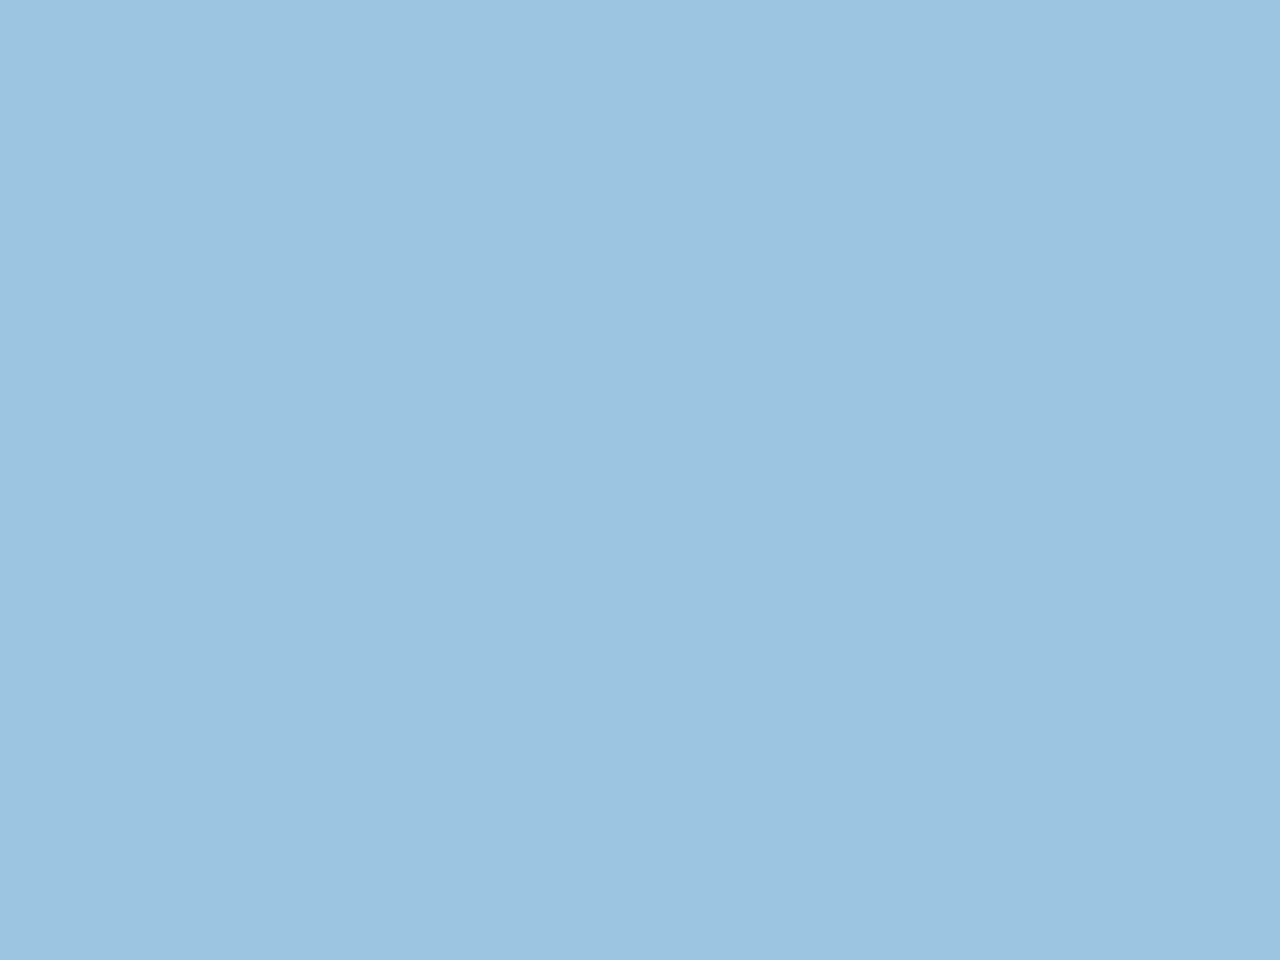 1280x960 Pale Cerulean Solid Color Background